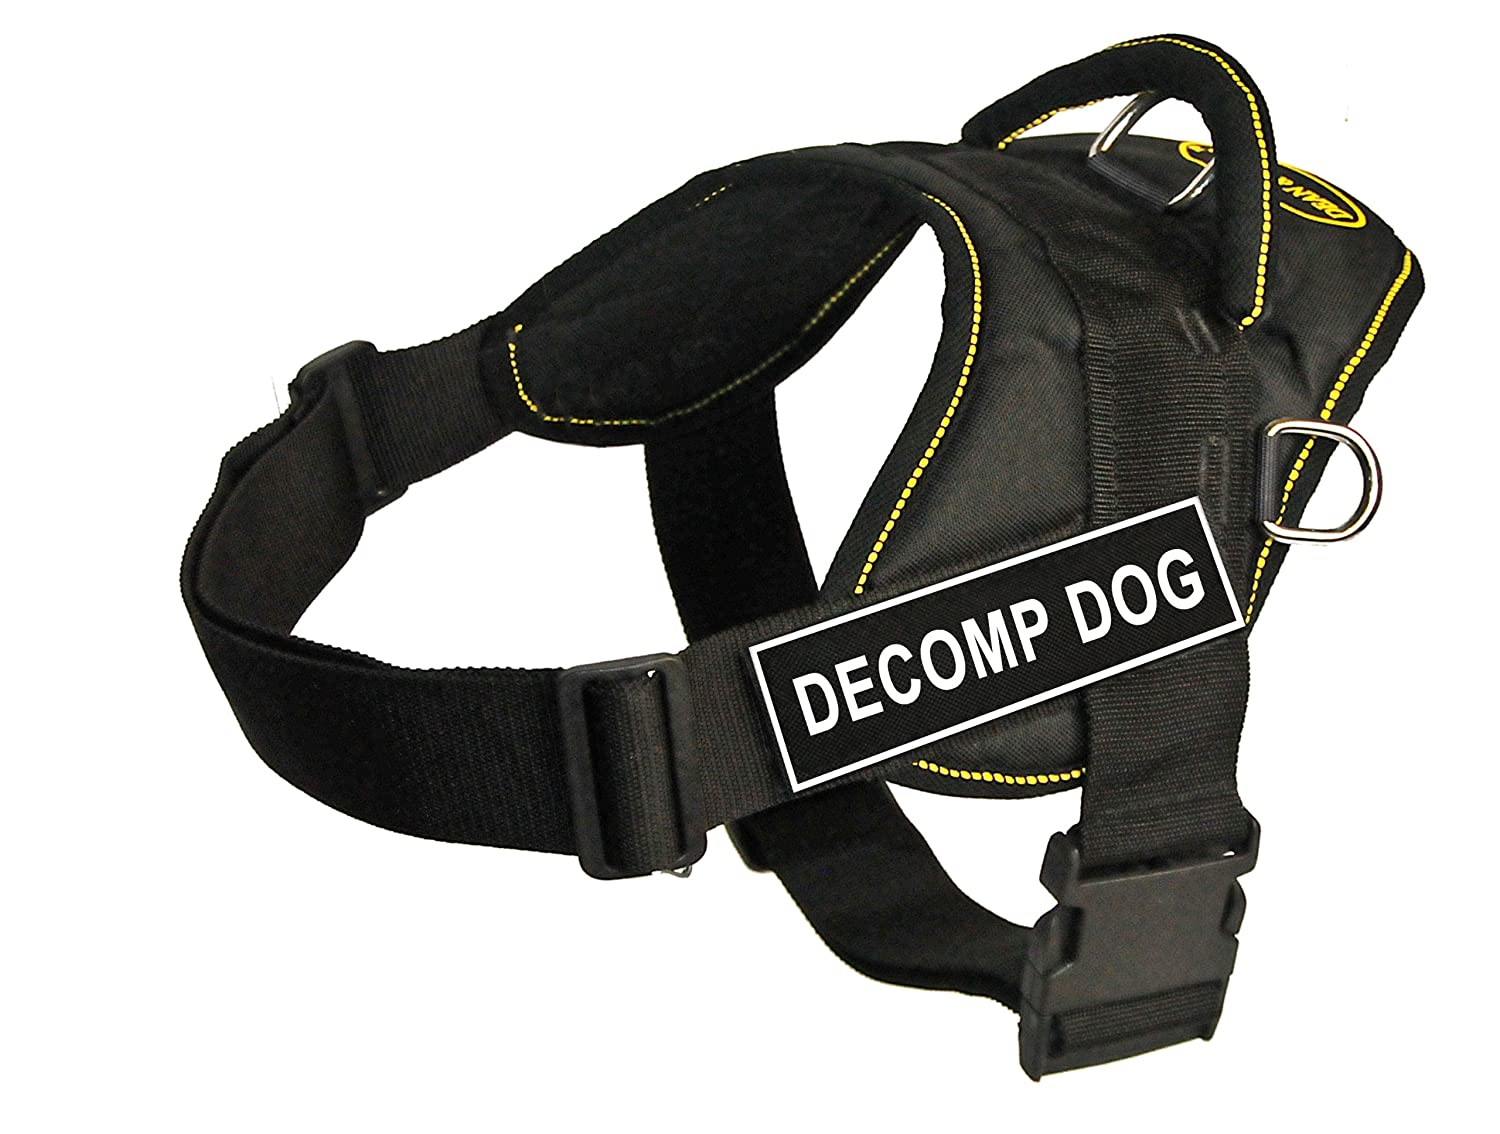 Dean & Tyler Fun Works 22-Inch to 27-Inch Pet Harness, Small, Decomp Dog, Black with Yellow Trim